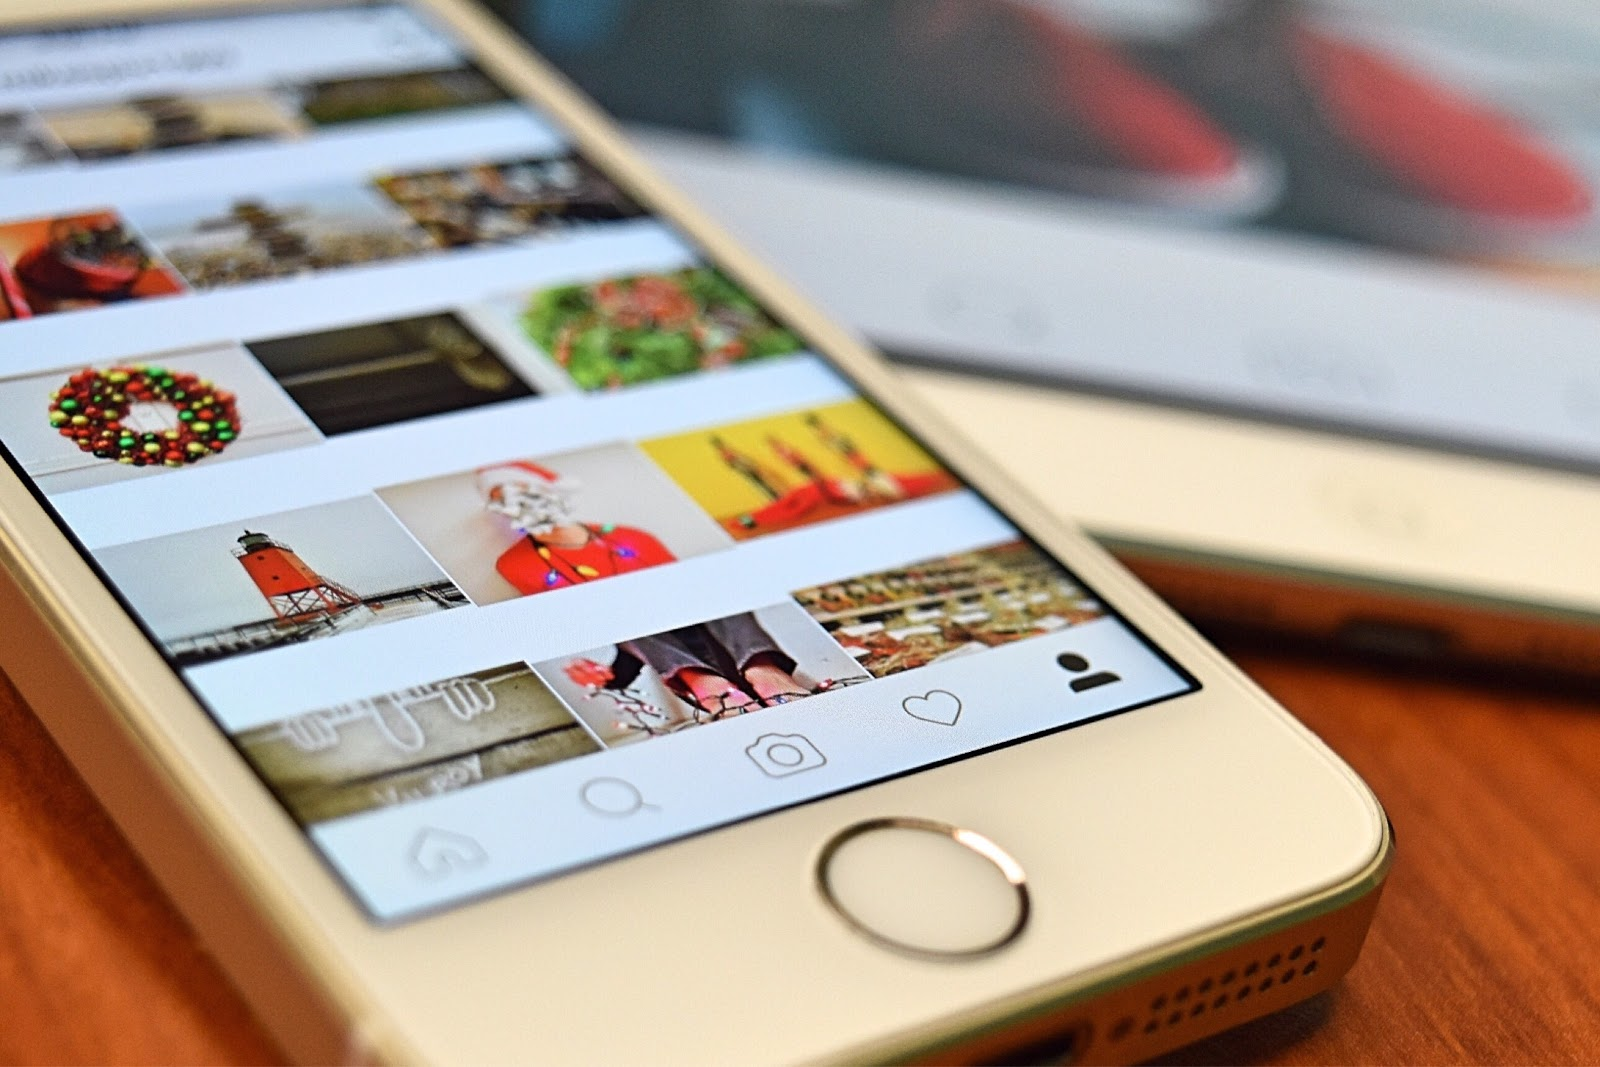 photographie d'un iphone ouvert sur l'application Instagram